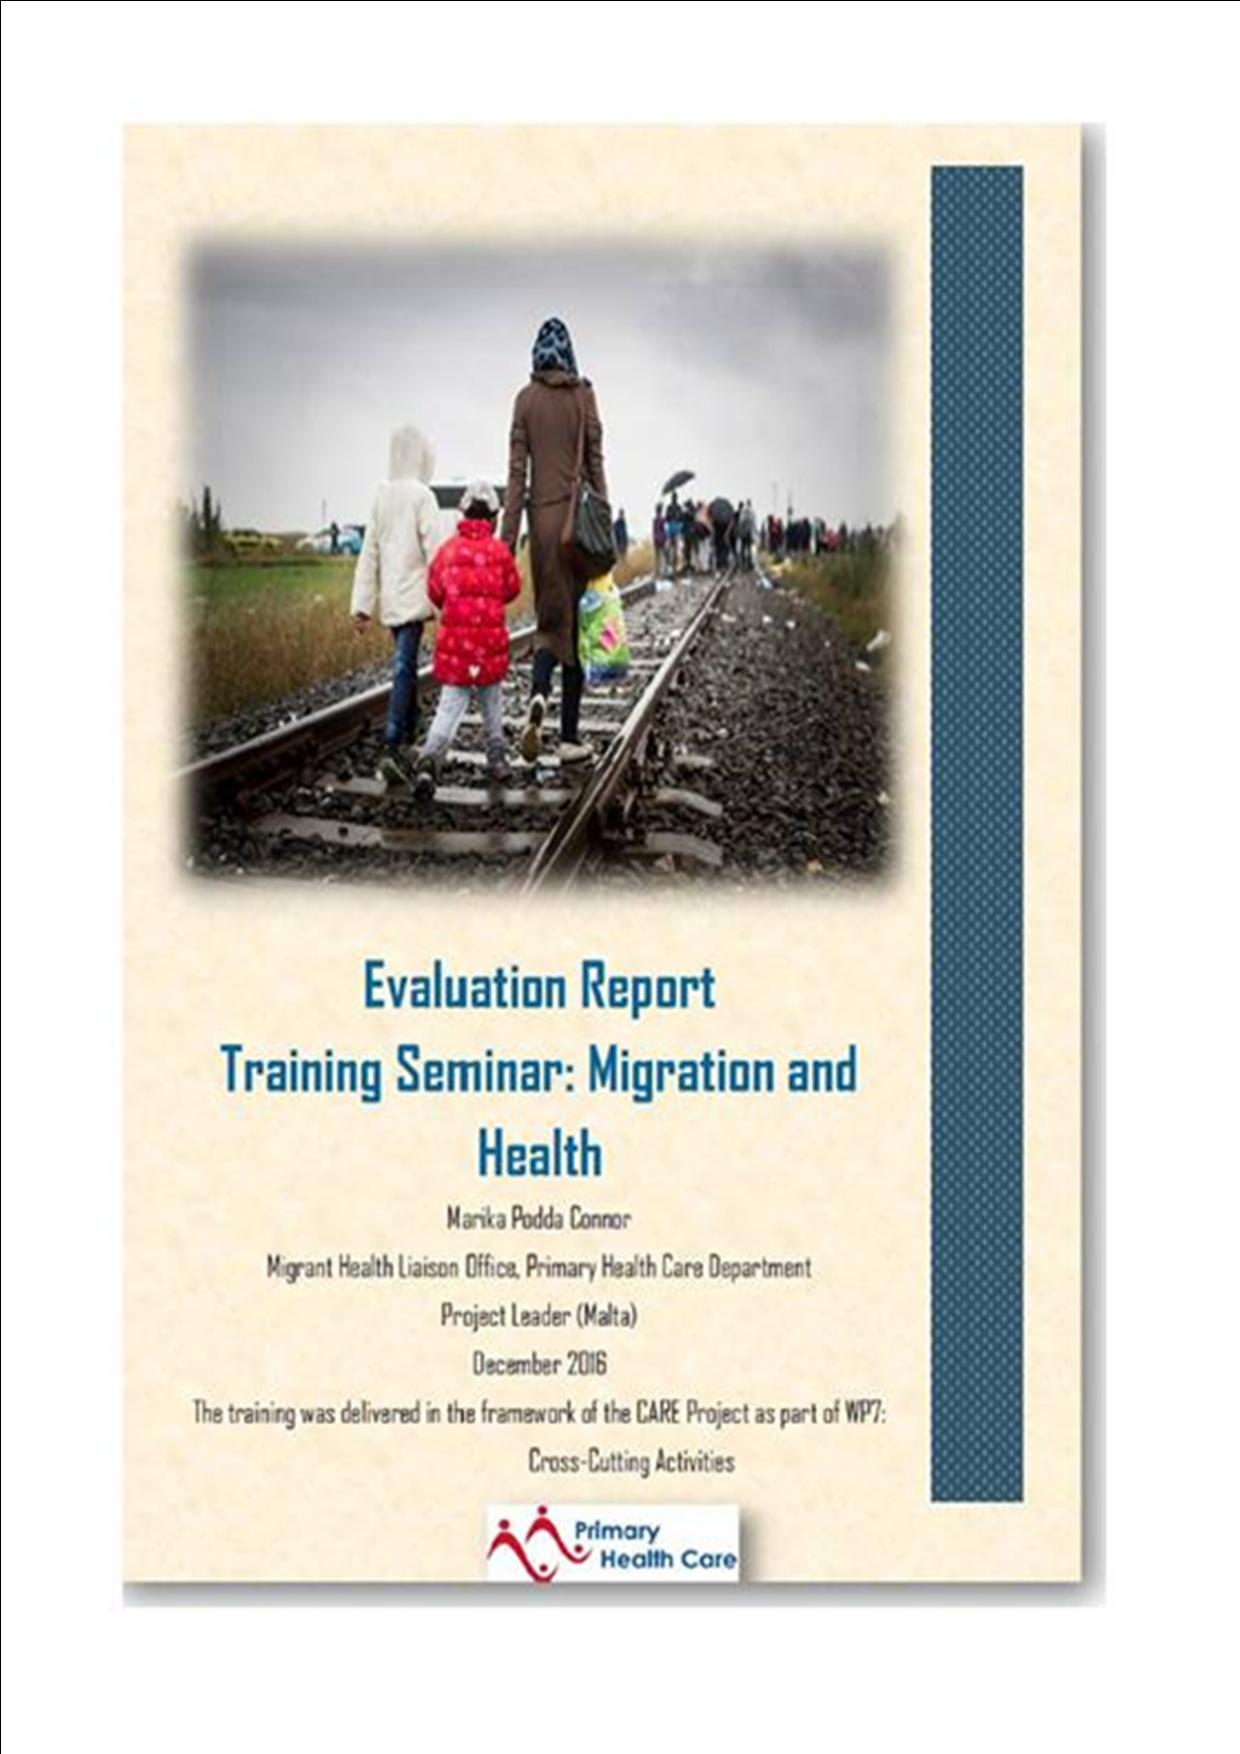 Evaluation Report_CARE Project Training Seminar-October 2016.jpg